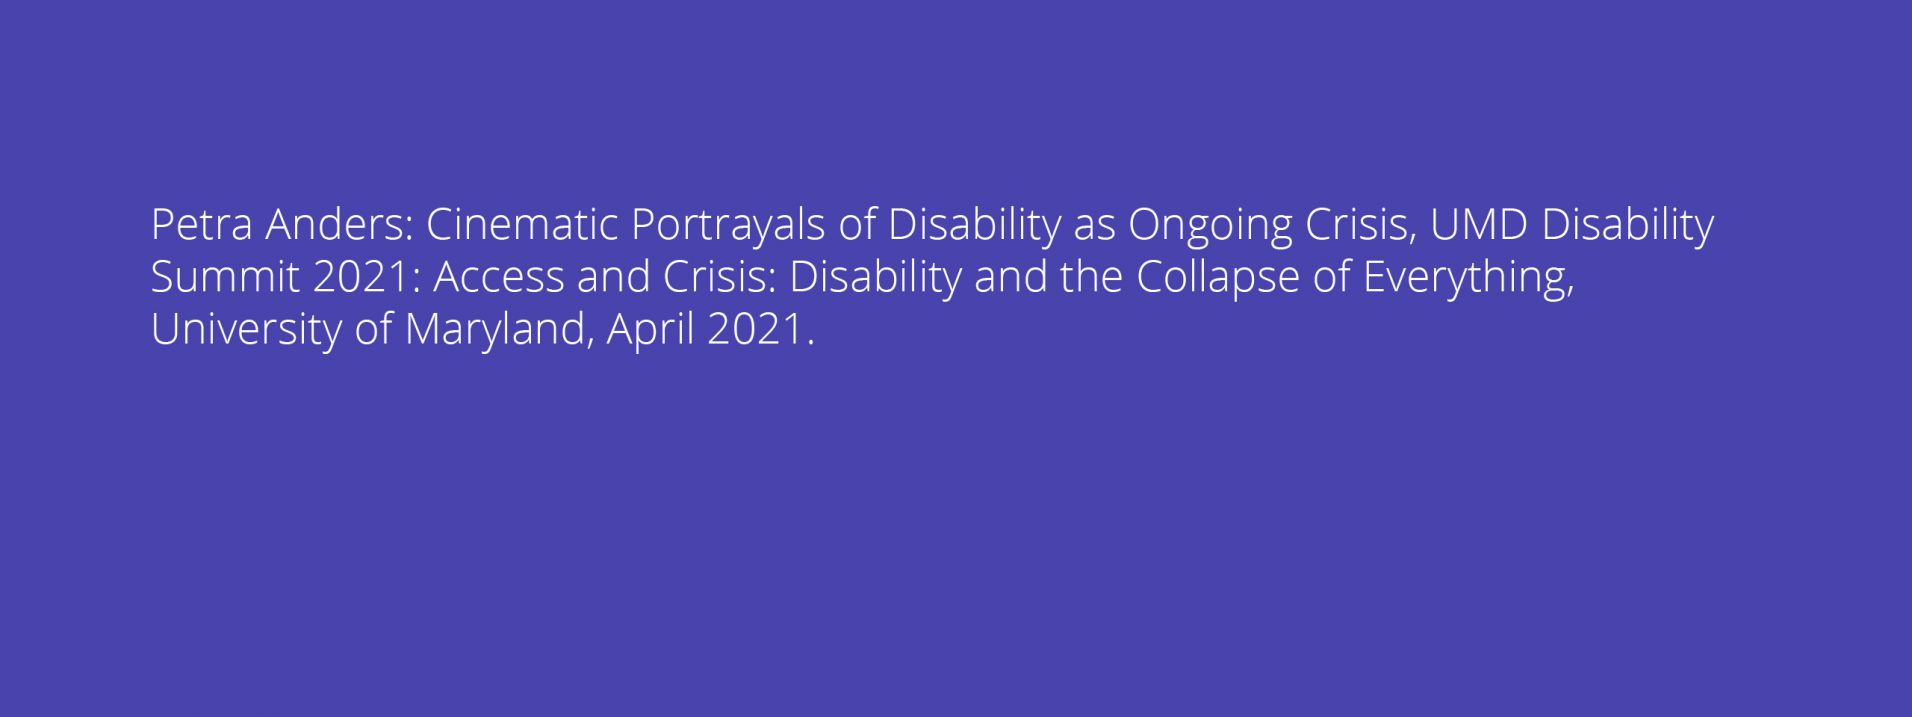 Petra Anders: Cinematic Portrayals of Disability as Ongoing Crisis, UMD Disability Summit 2021: Access and Crisis: Disability and the Collapse of Everything, University of Maryland, April 2021.